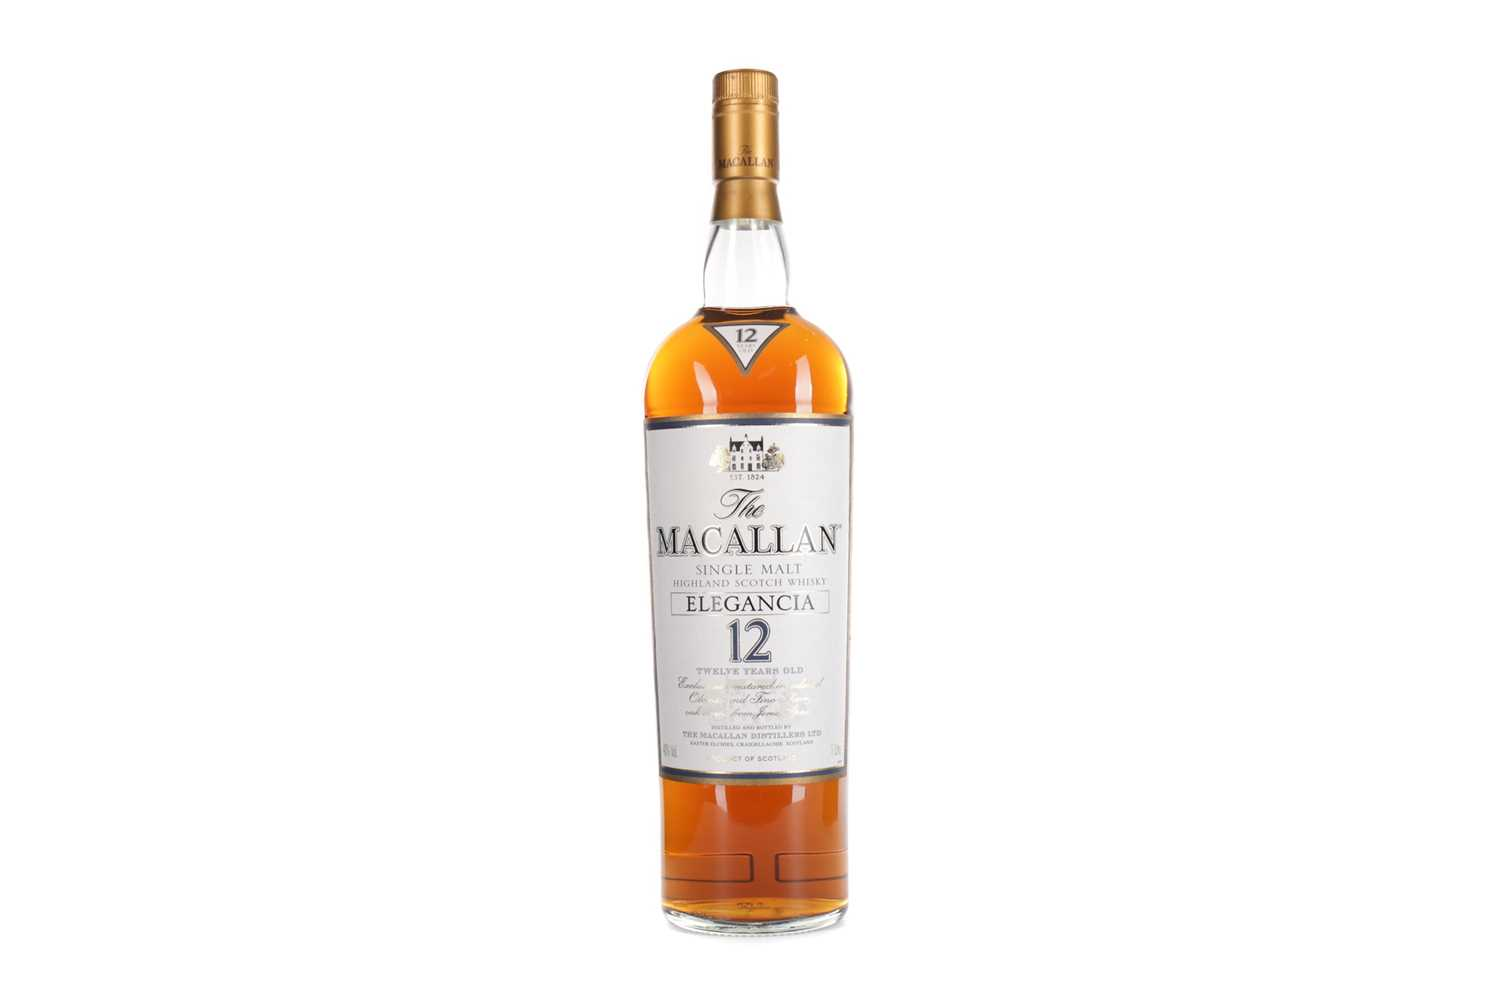 Lot 185 - MACALLAN ELEGANCIA 12 YEARS OLD - ONE LITRE